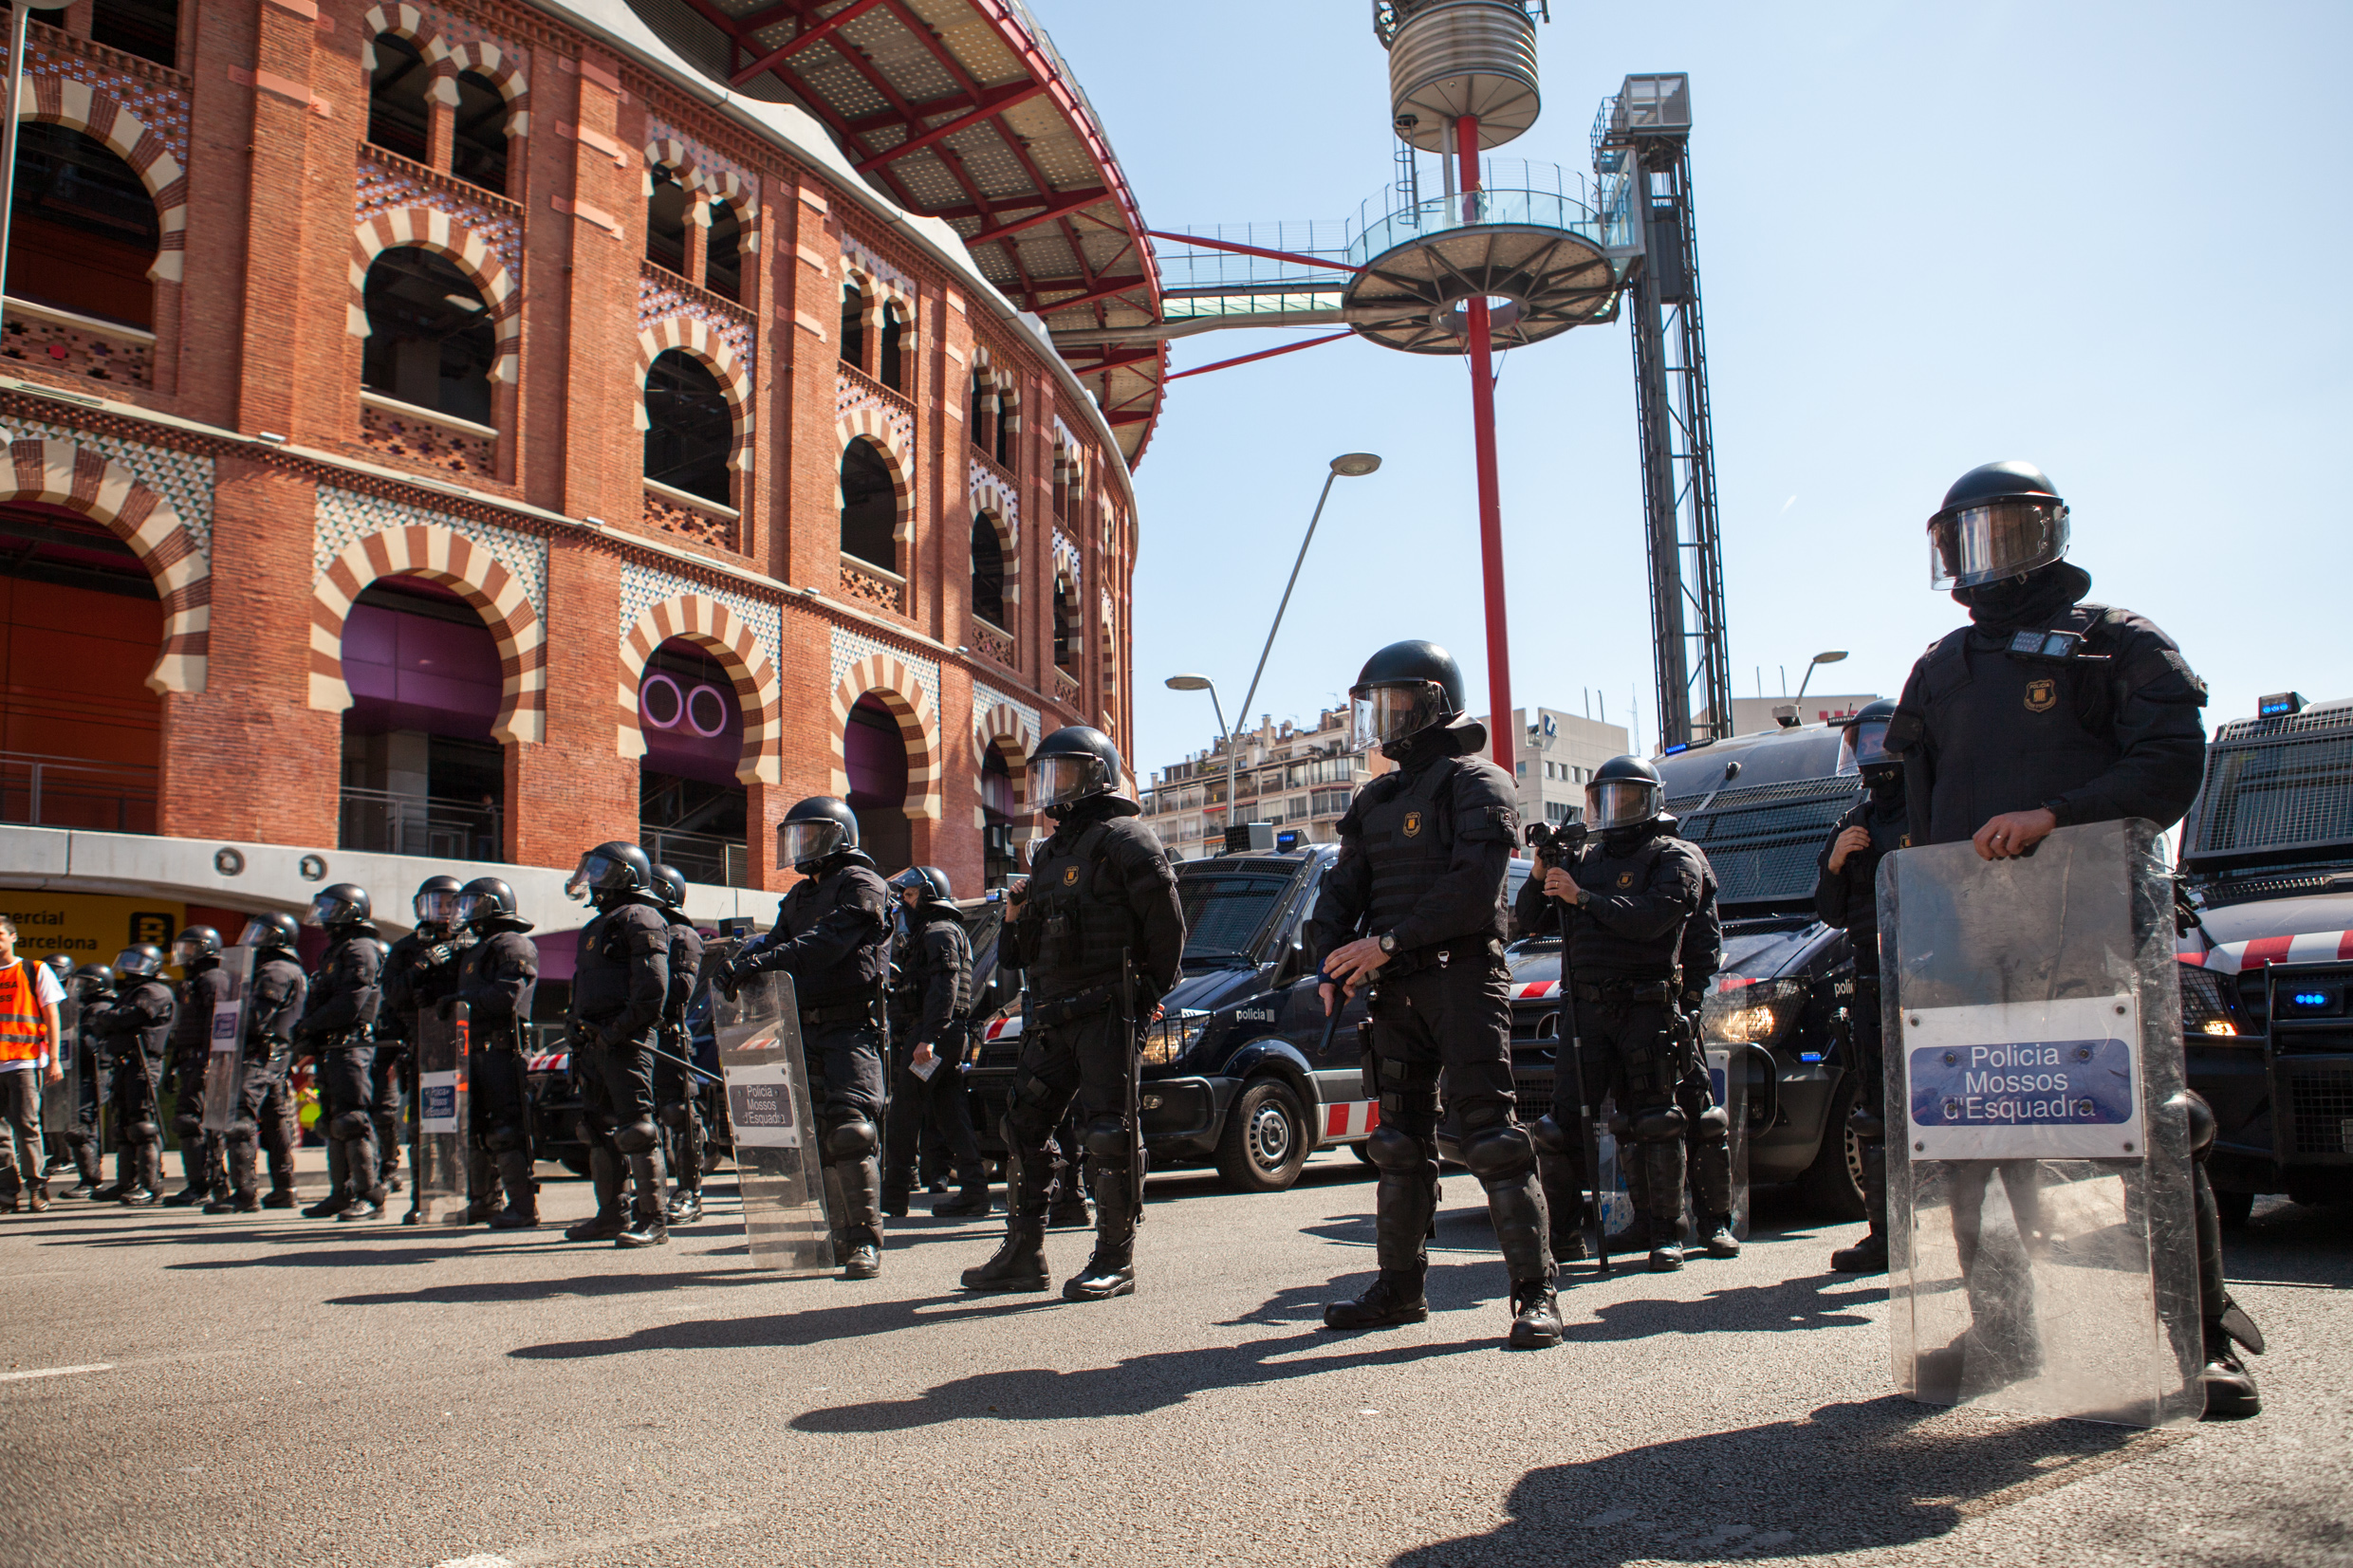 Catalan police protecting spanish far right party VOX from the antifascist group. Barcelona